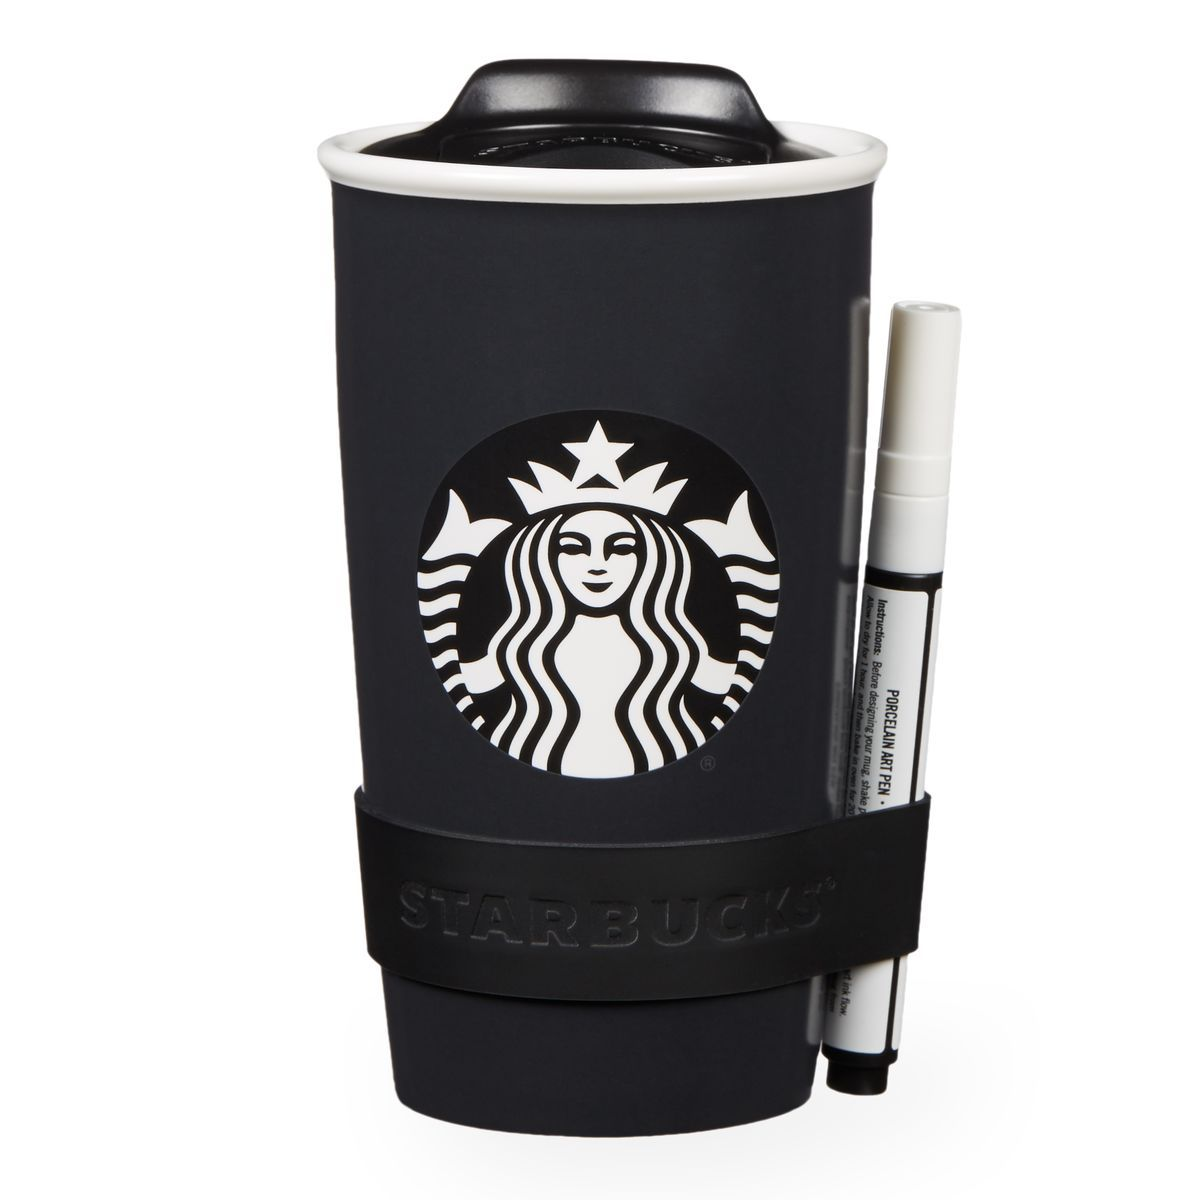 Starbucks Travel Coffee Maker : A double-walled ceramic travel mug you can write on with the included chalk pen. starbucks ...